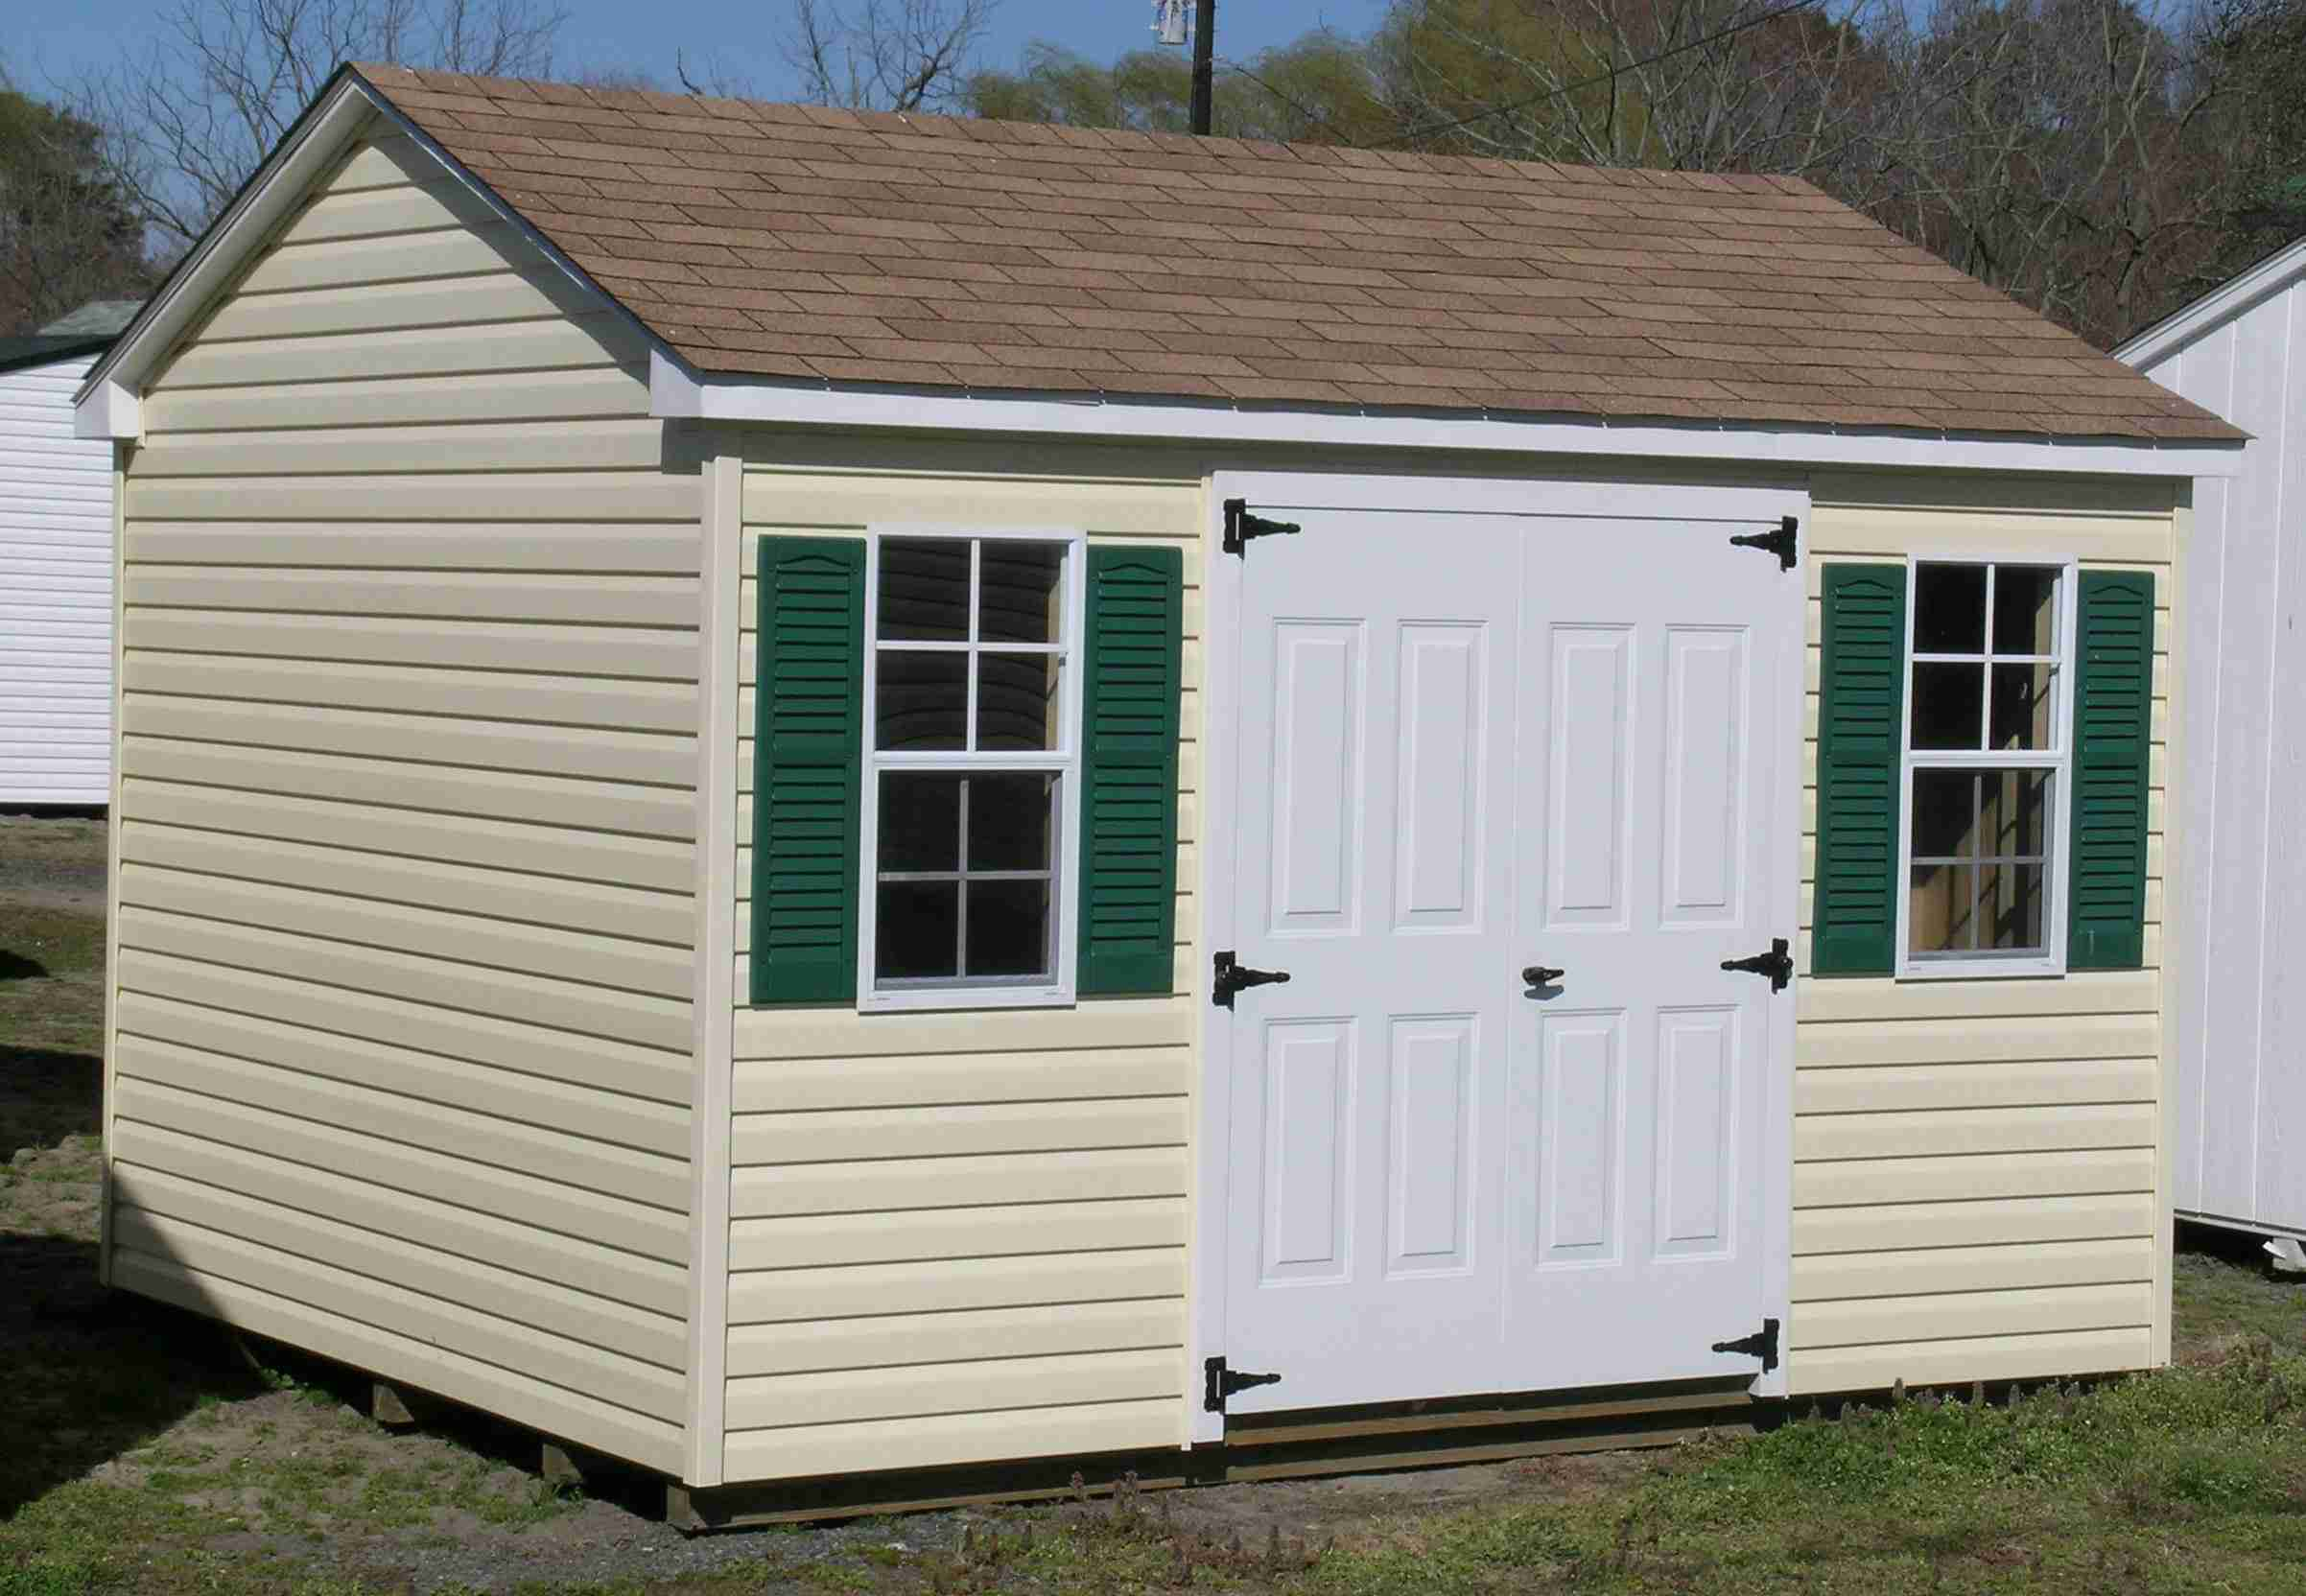 md sheds gazebos port reading woodbridge township nj 732 634 3289 - Garden Sheds Nj